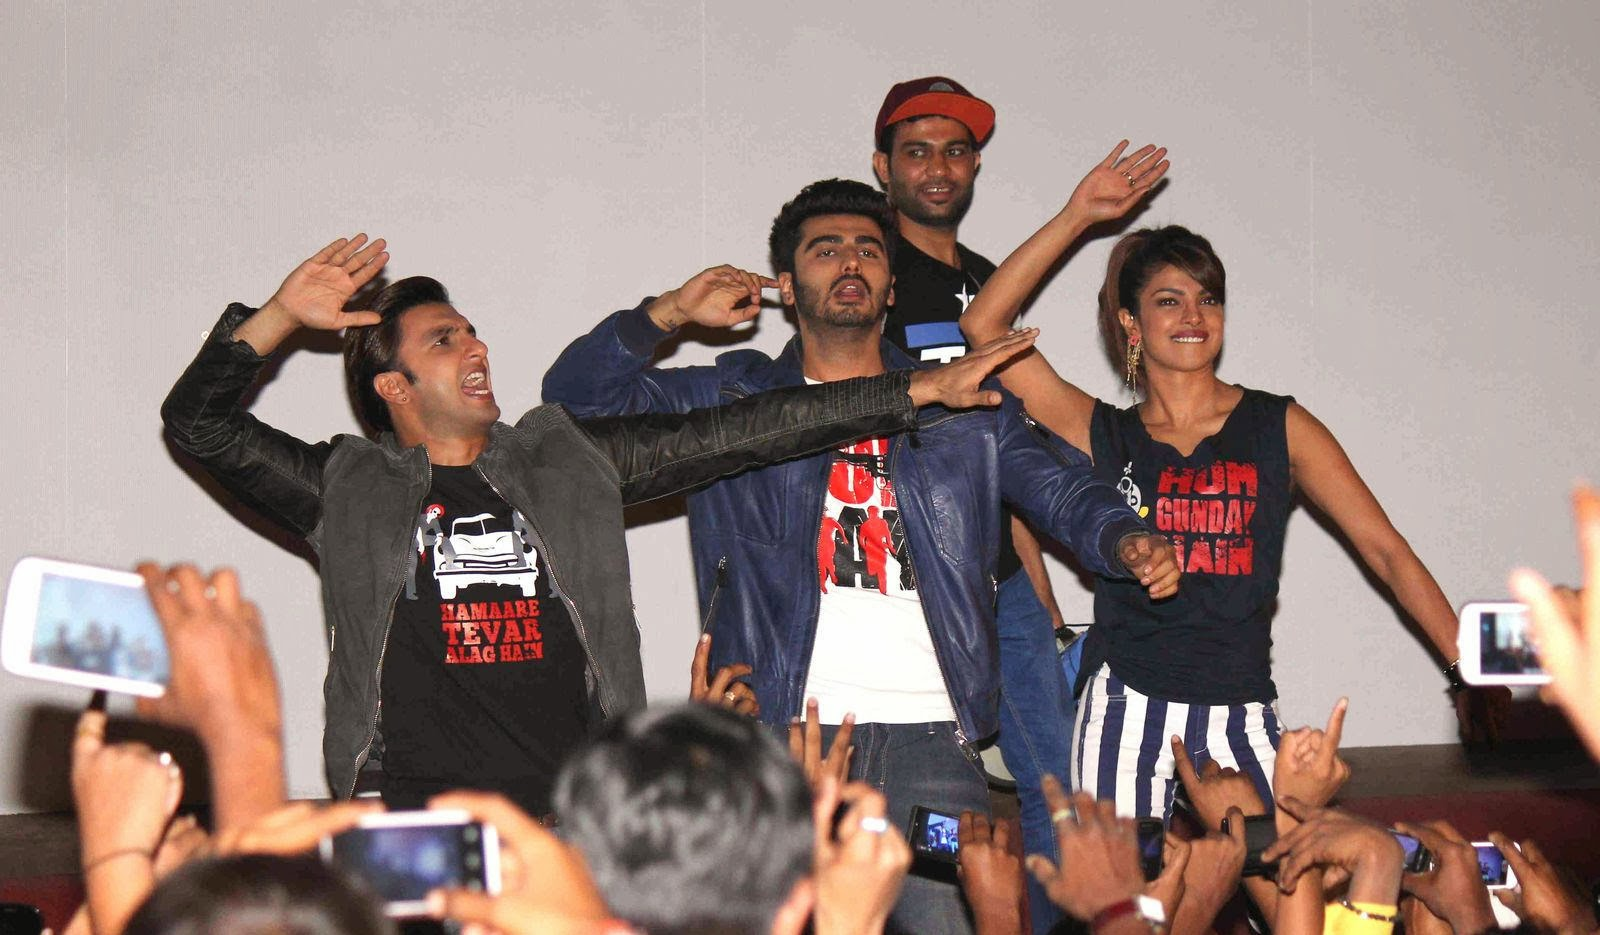 http://2.bp.blogspot.com/-GGGMg8hh8hg/Uv8qhpuvjsI/AAAAAAAAk0I/3fjUqaq4v0g/s1600/Gunday+Movie+Team+Visit+Gaiety+Galaxy+For+Movie+Promotions+%25288%2529.jpg